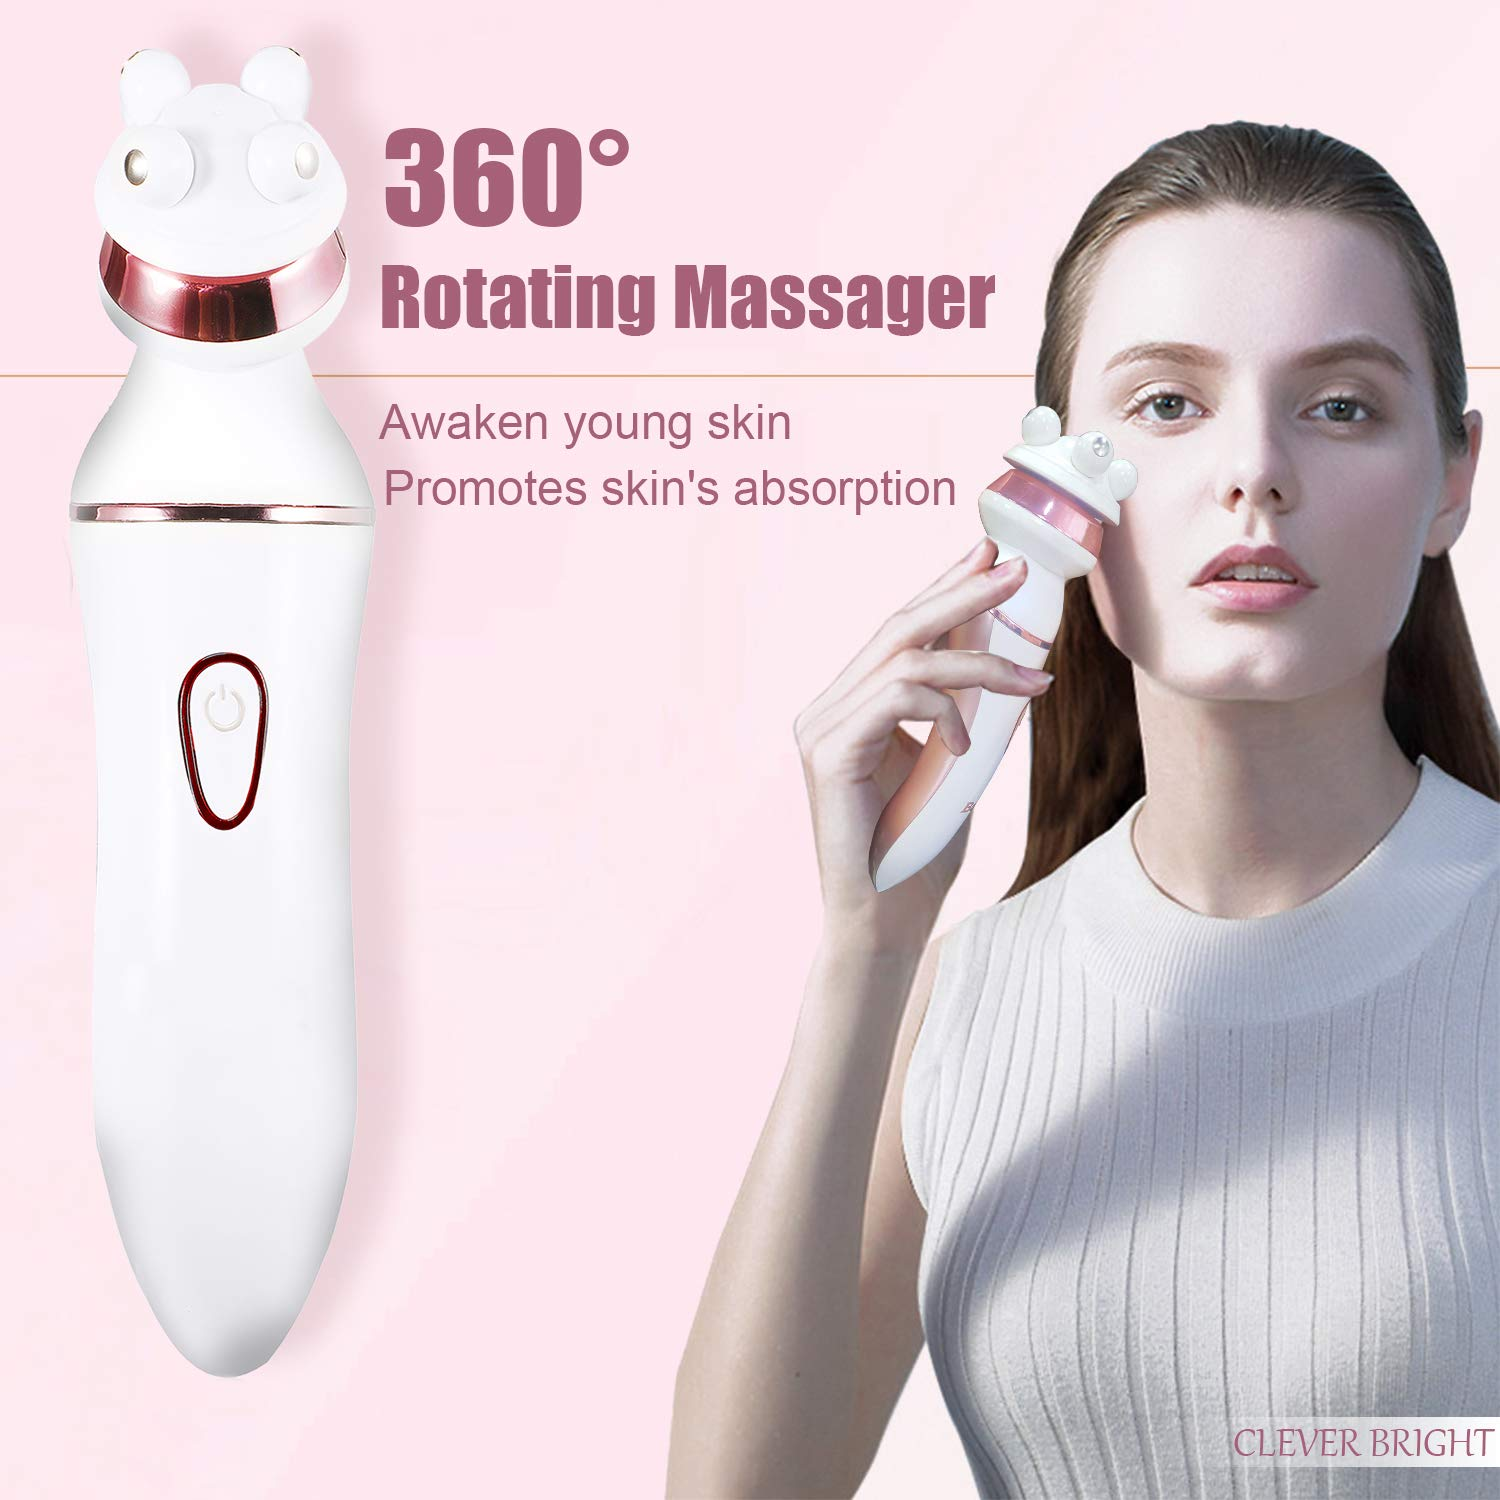 6-In-1 Electric Shaver for Women, Waterproof Ladies Razor Cordless Bikini Trimmer Set